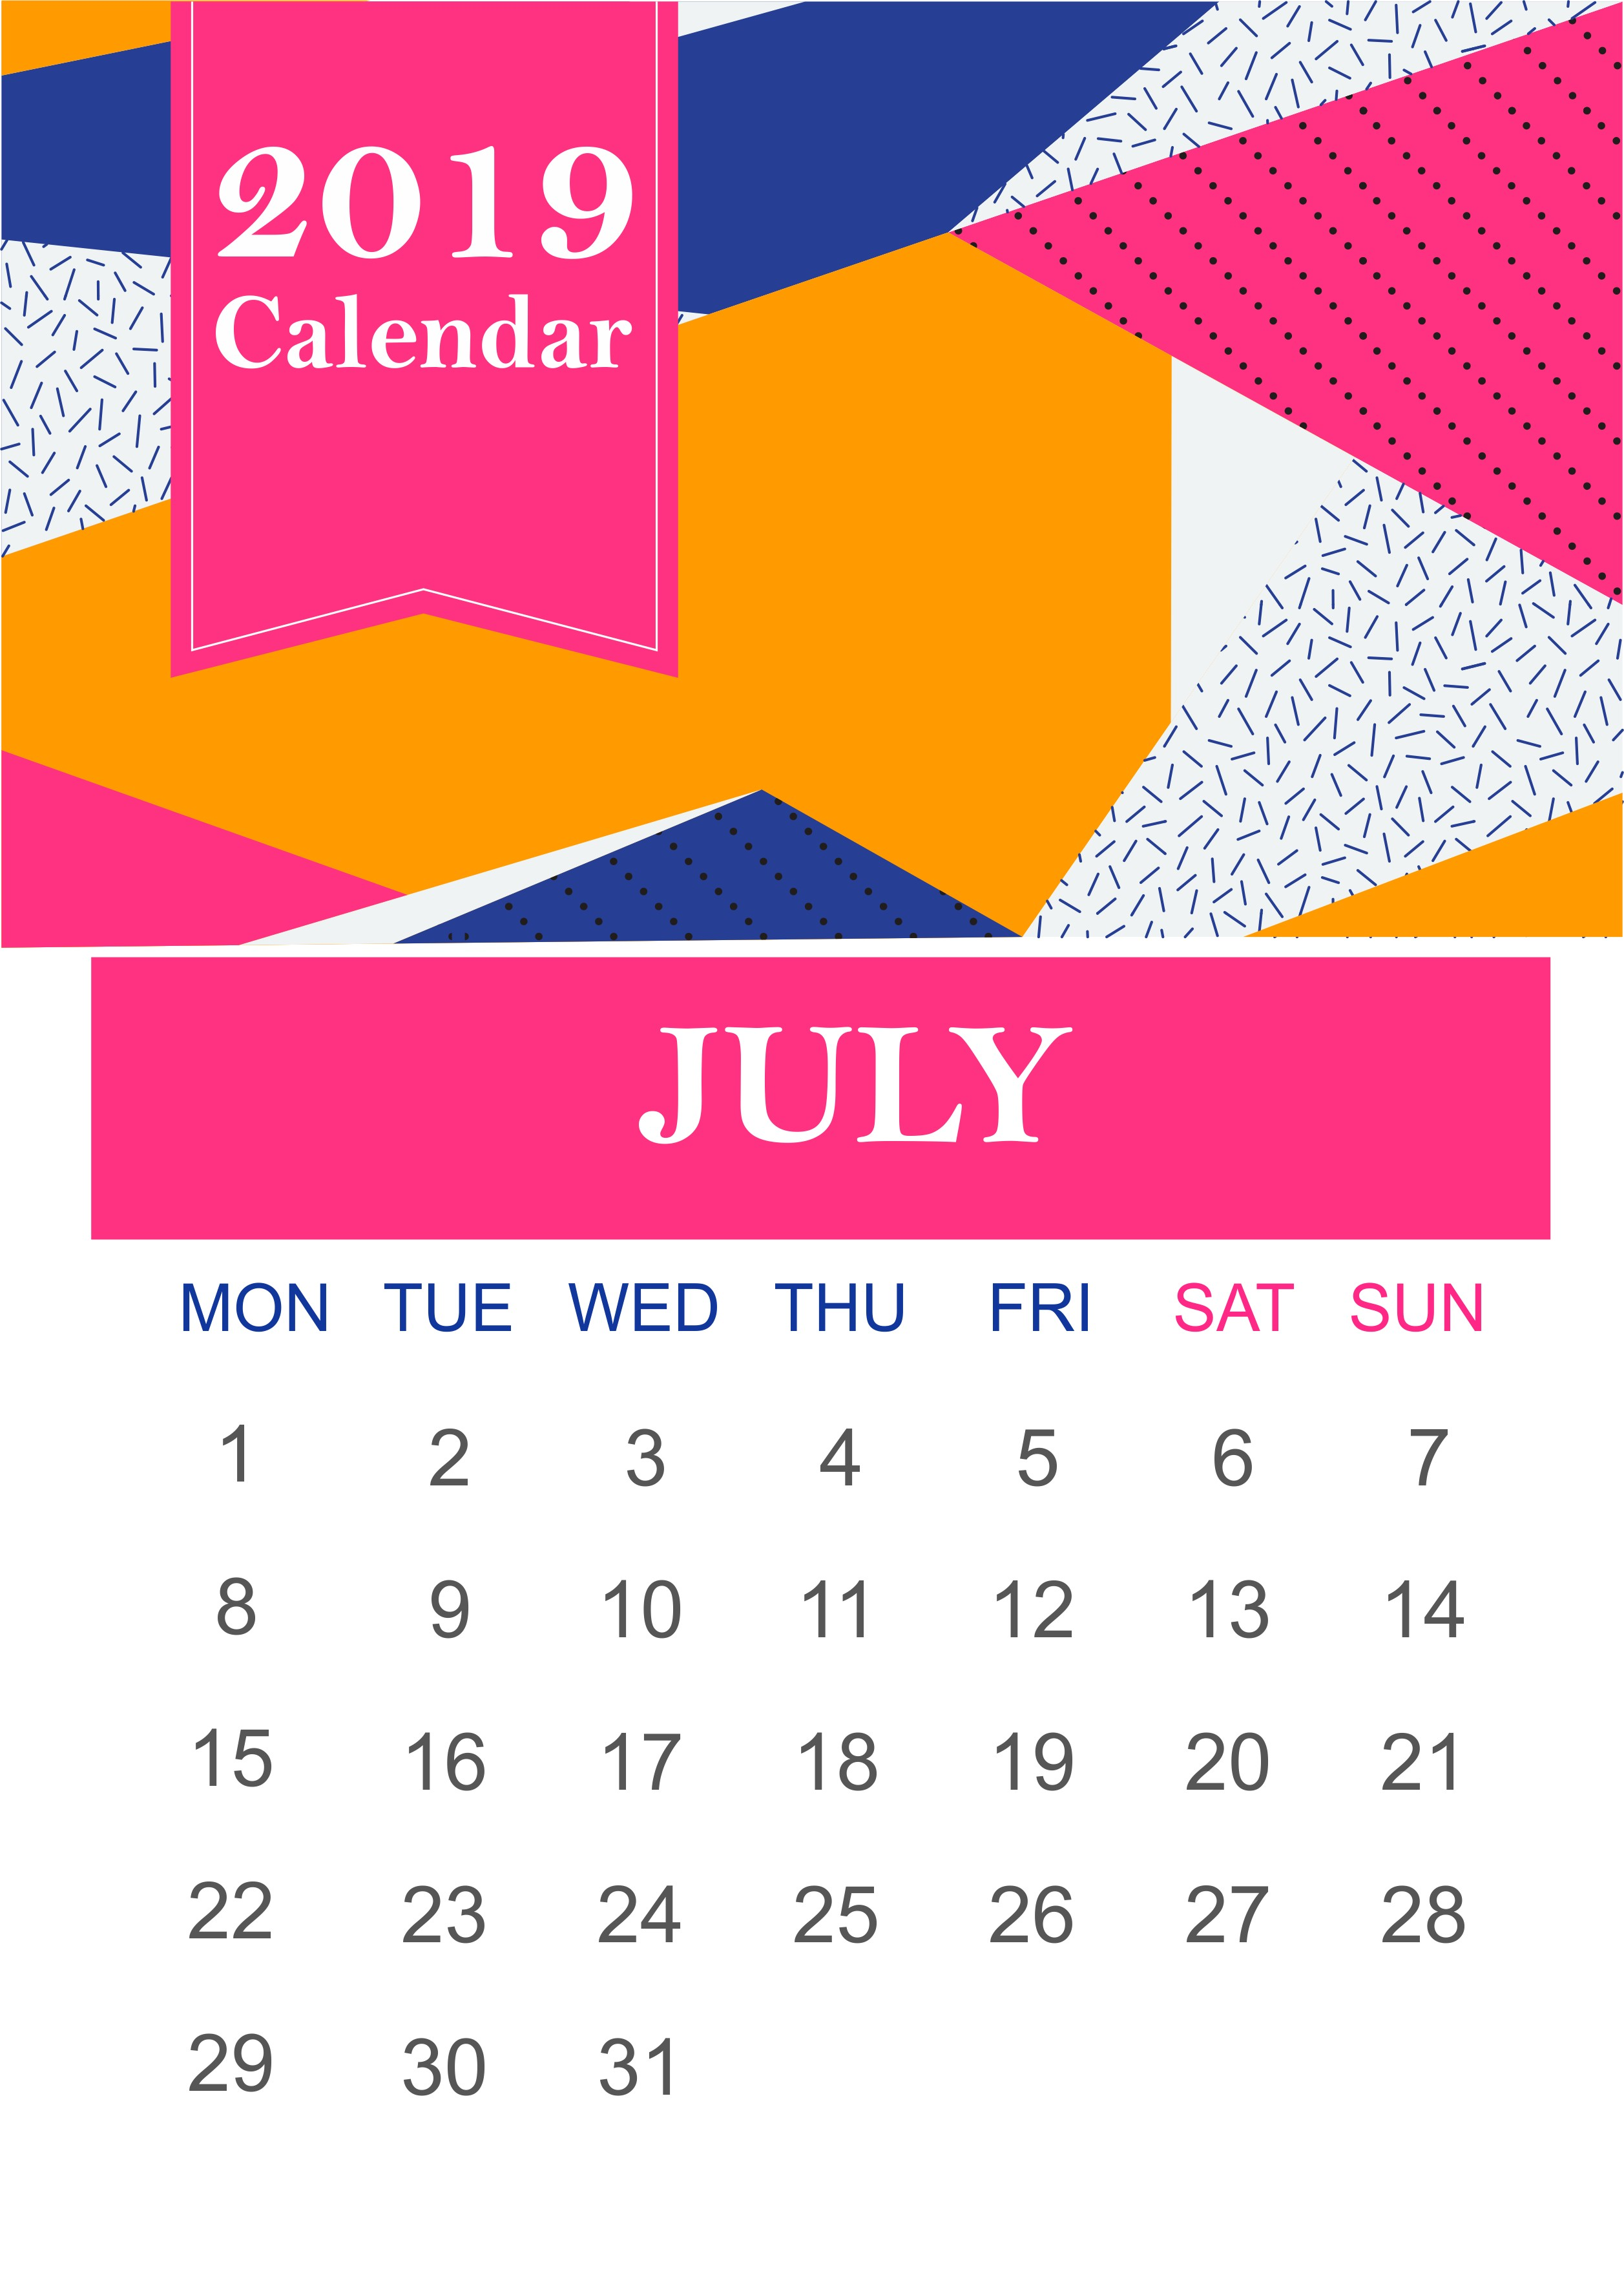 Calendario 2019 Excel Editable Más Recientes July 2019 Wall Calendar July Julycalendar July2019 Of Calendario 2019 Excel Editable Más Arriba-a-fecha Printable 2018 Calendar Vector Editable New for A Might Need